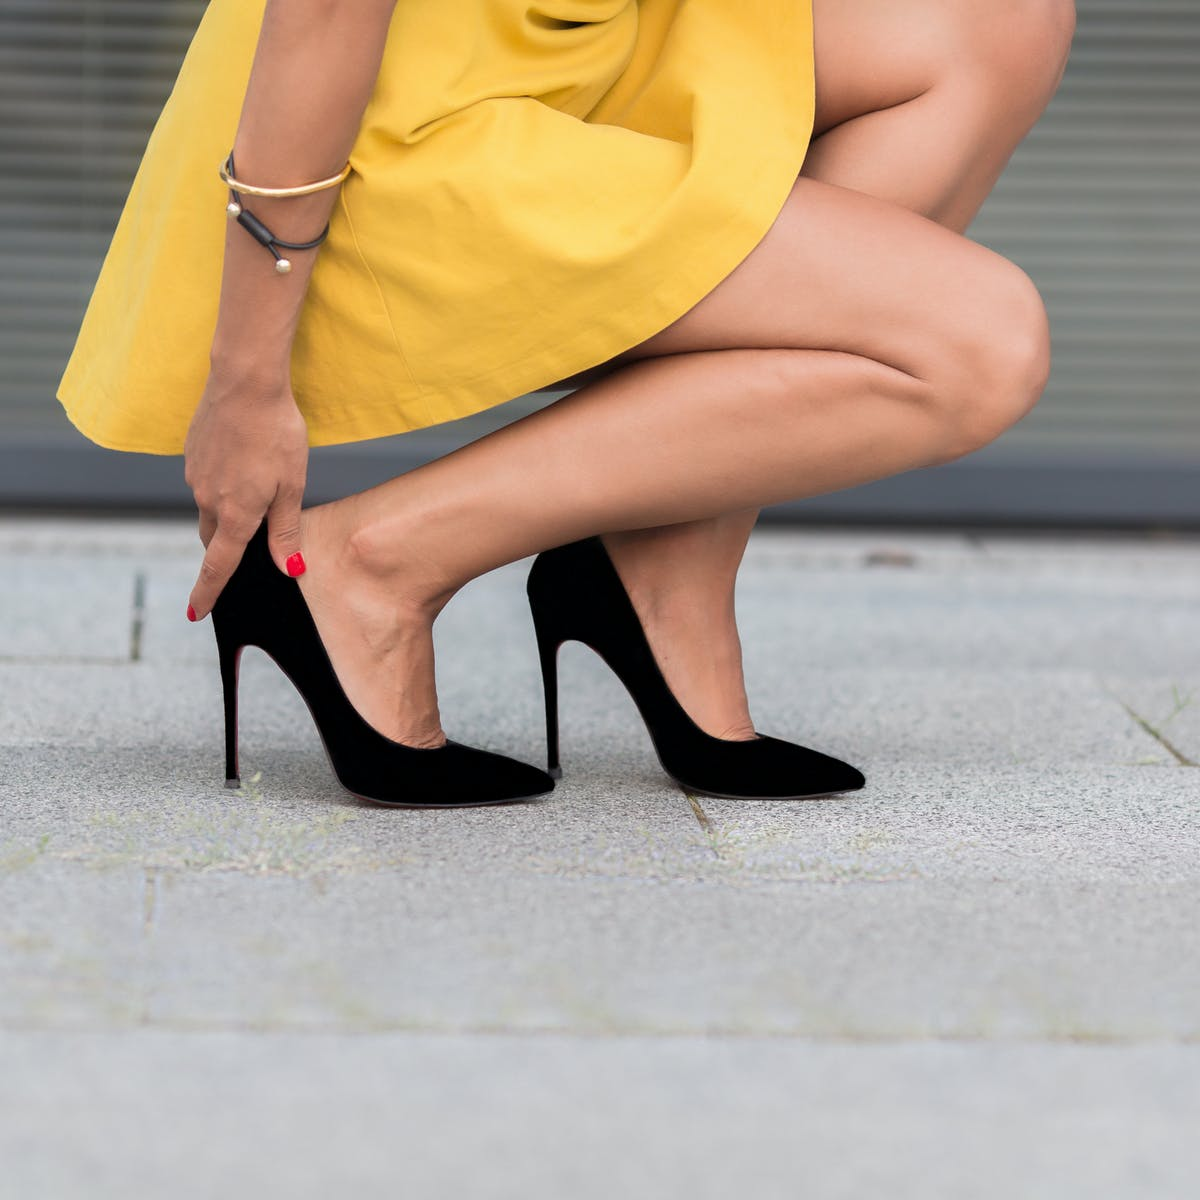 Bbw With High Heels Pictures